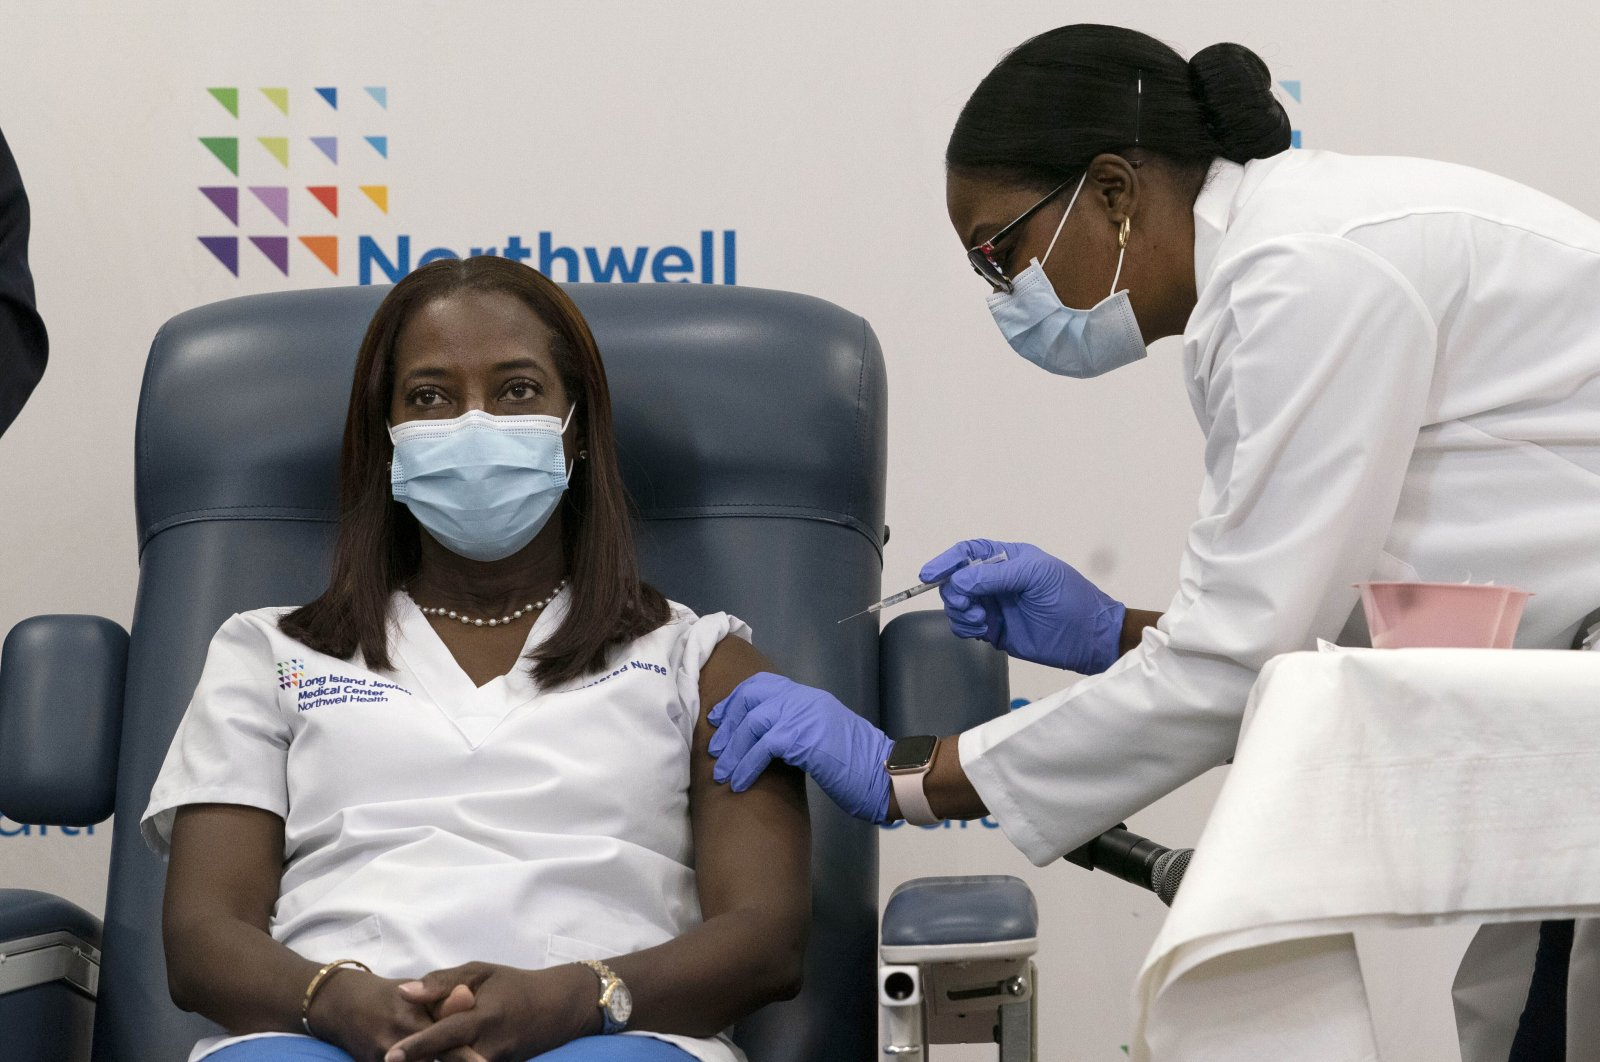 In this Dec. 14, 2020, file photo, Sandra Lindsay (L), a nurse at Long Island Jewish Medical Center, is inoculated with the Pfizer-BioNTech COVID-19 vaccine by Dr. Michelle Chester, in the Queens borough of New York. (AP Photo)